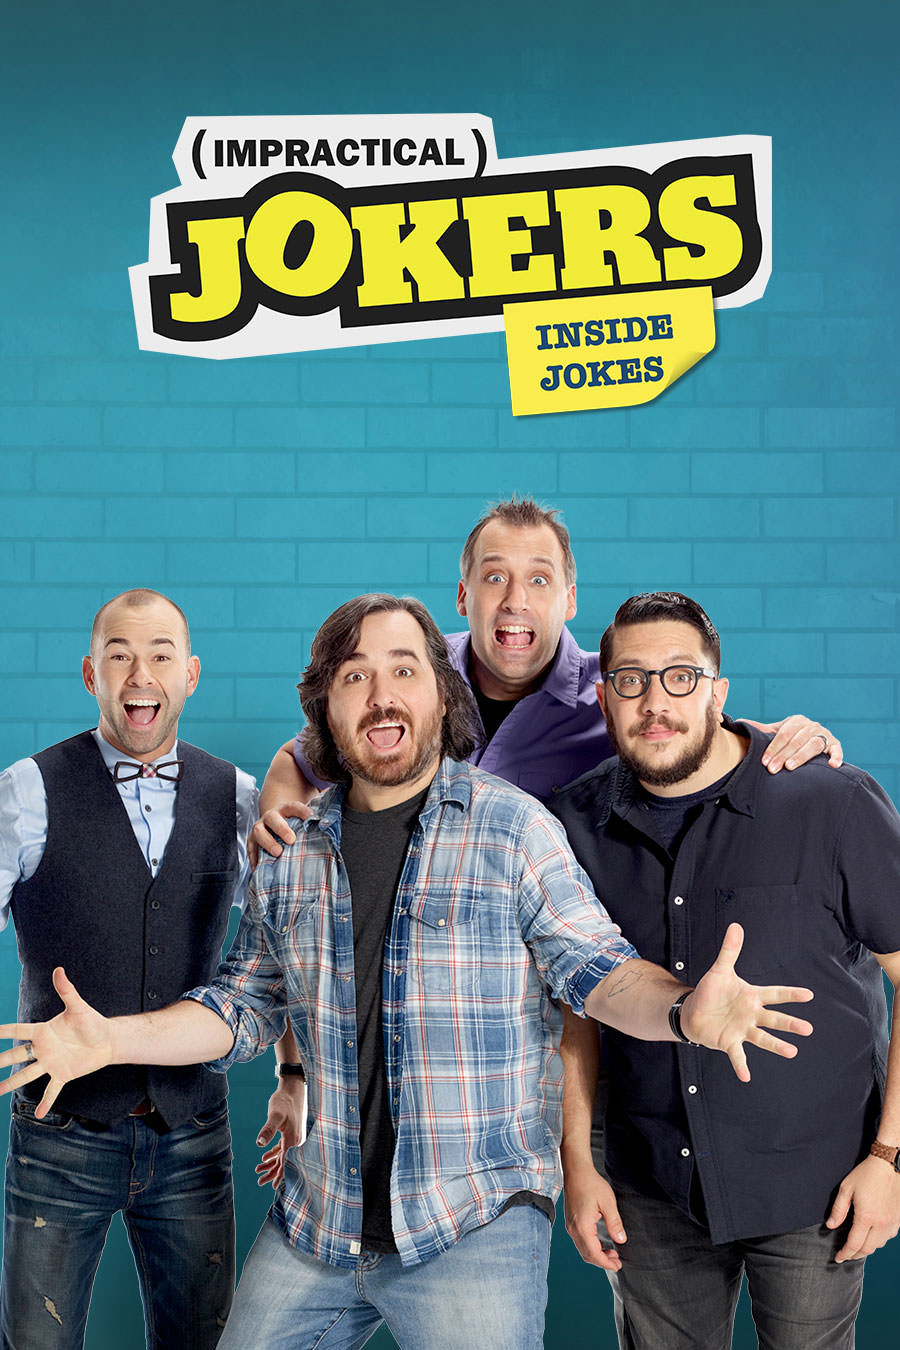 Impractical Jokers: Inside Jokes